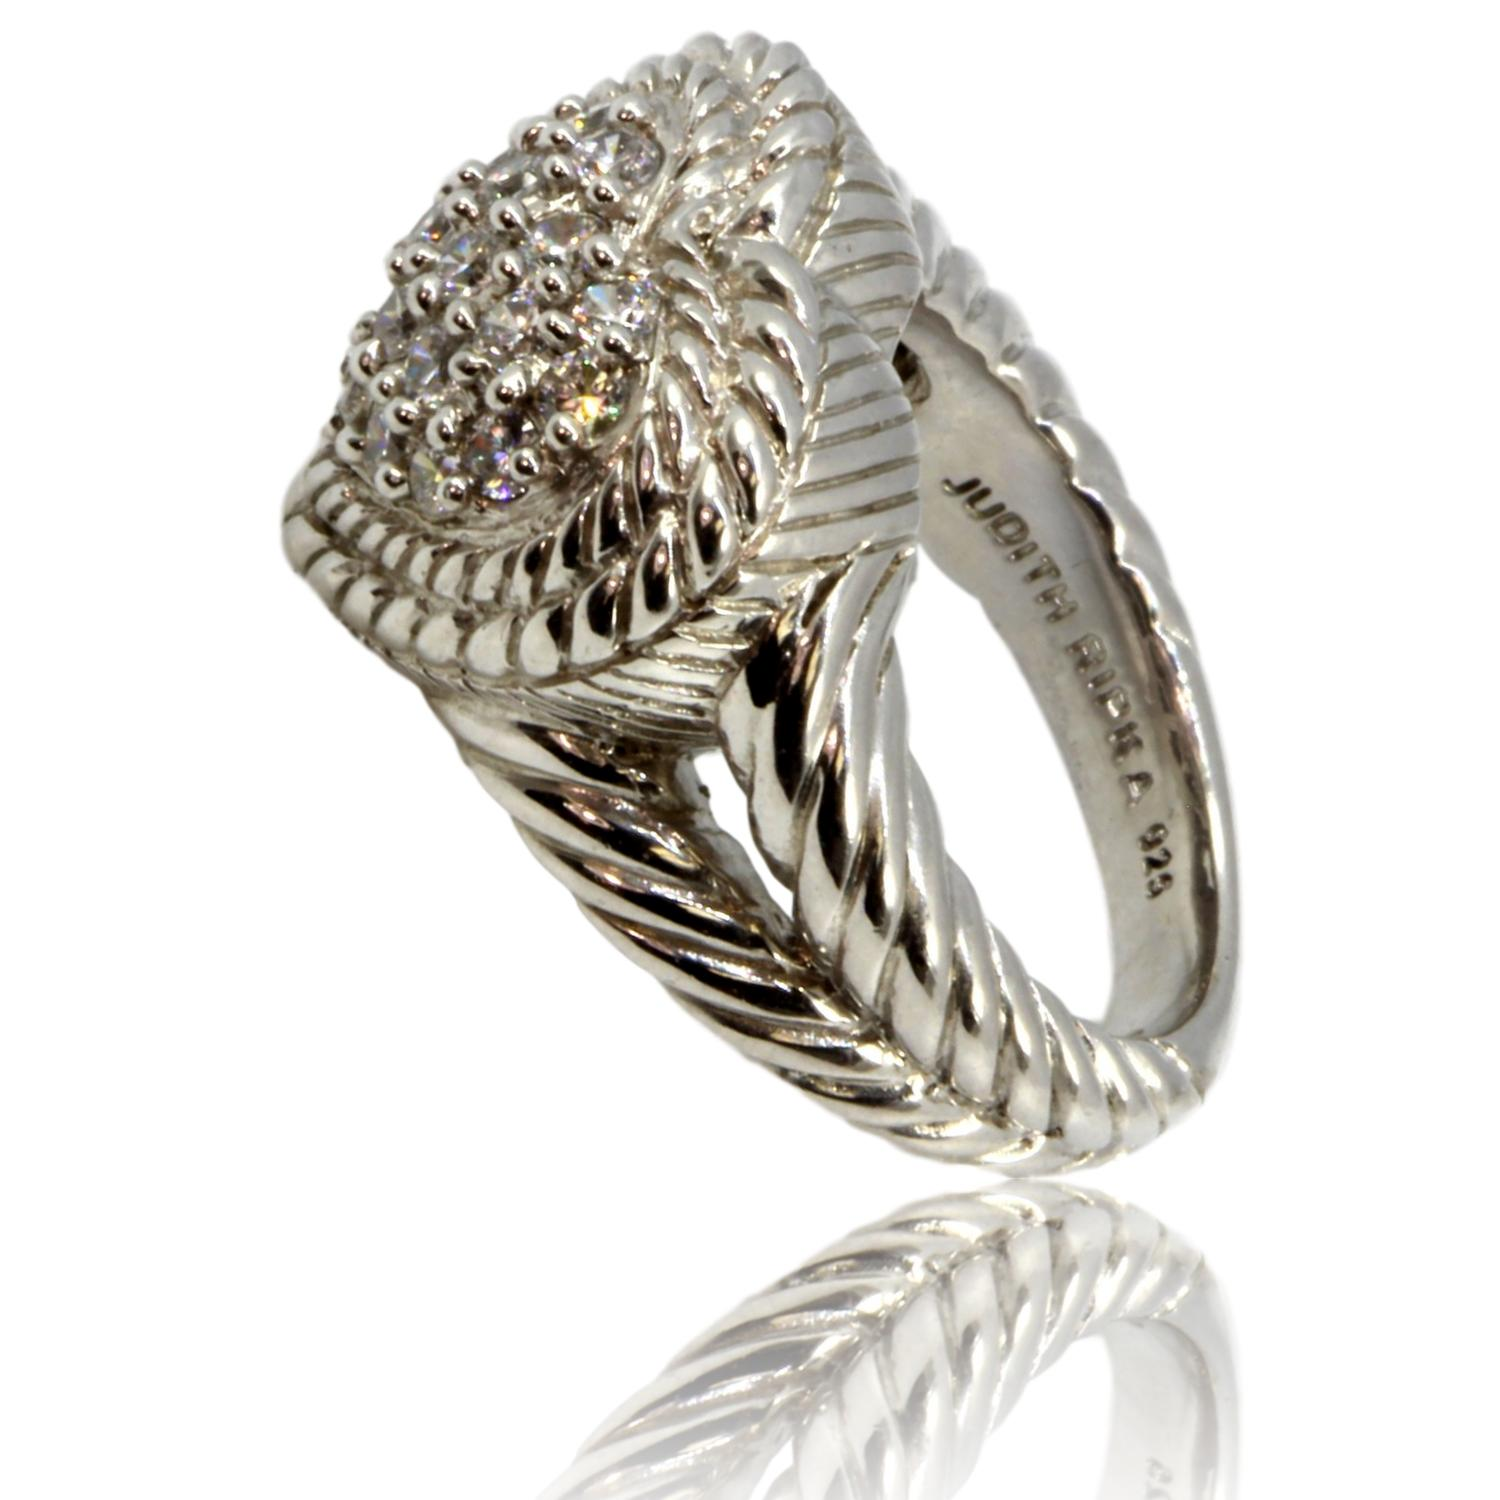 Sterling-Silver-Judith-Ripka-CZ-Dominique-Heart-Ring_88845A.jpg